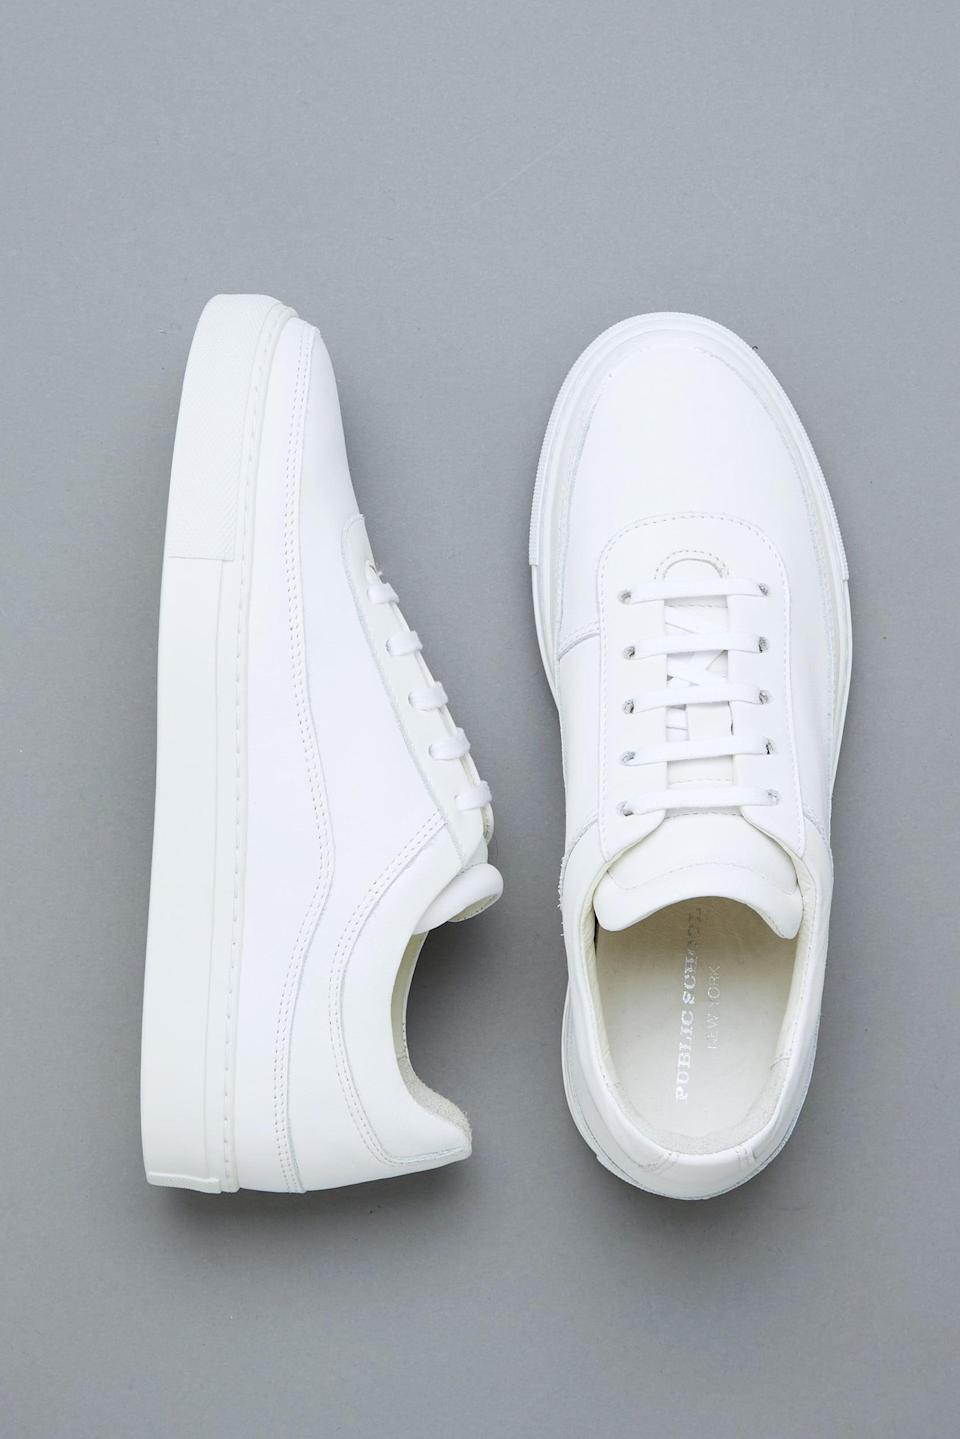 "<p>These versatile <a href=""https://www.popsugar.com/buy/Public-School-Classic-Braeburn-Sneakers-584505?p_name=Public%20School%20Classic%20Braeburn%20Sneakers&retailer=publicschoolnyc.com&pid=584505&price=425&evar1=fab%3Aus&evar9=47571677&evar98=https%3A%2F%2Fwww.popsugar.com%2Ffashion%2Fphoto-gallery%2F47571677%2Fimage%2F47571934%2FPublic-School-Classic-Braeburn-Sneakers&list1=shopping%2Cshoes%2Csneakers%2Csummer%2Csummer%20fashion%2Cfashion%20shopping&prop13=mobile&pdata=1"" rel=""nofollow noopener"" class=""link rapid-noclick-resp"" target=""_blank"" data-ylk=""slk:Public School Classic Braeburn Sneakers"">Public School Classic Braeburn Sneakers</a> ($425) go with everything.</p>"